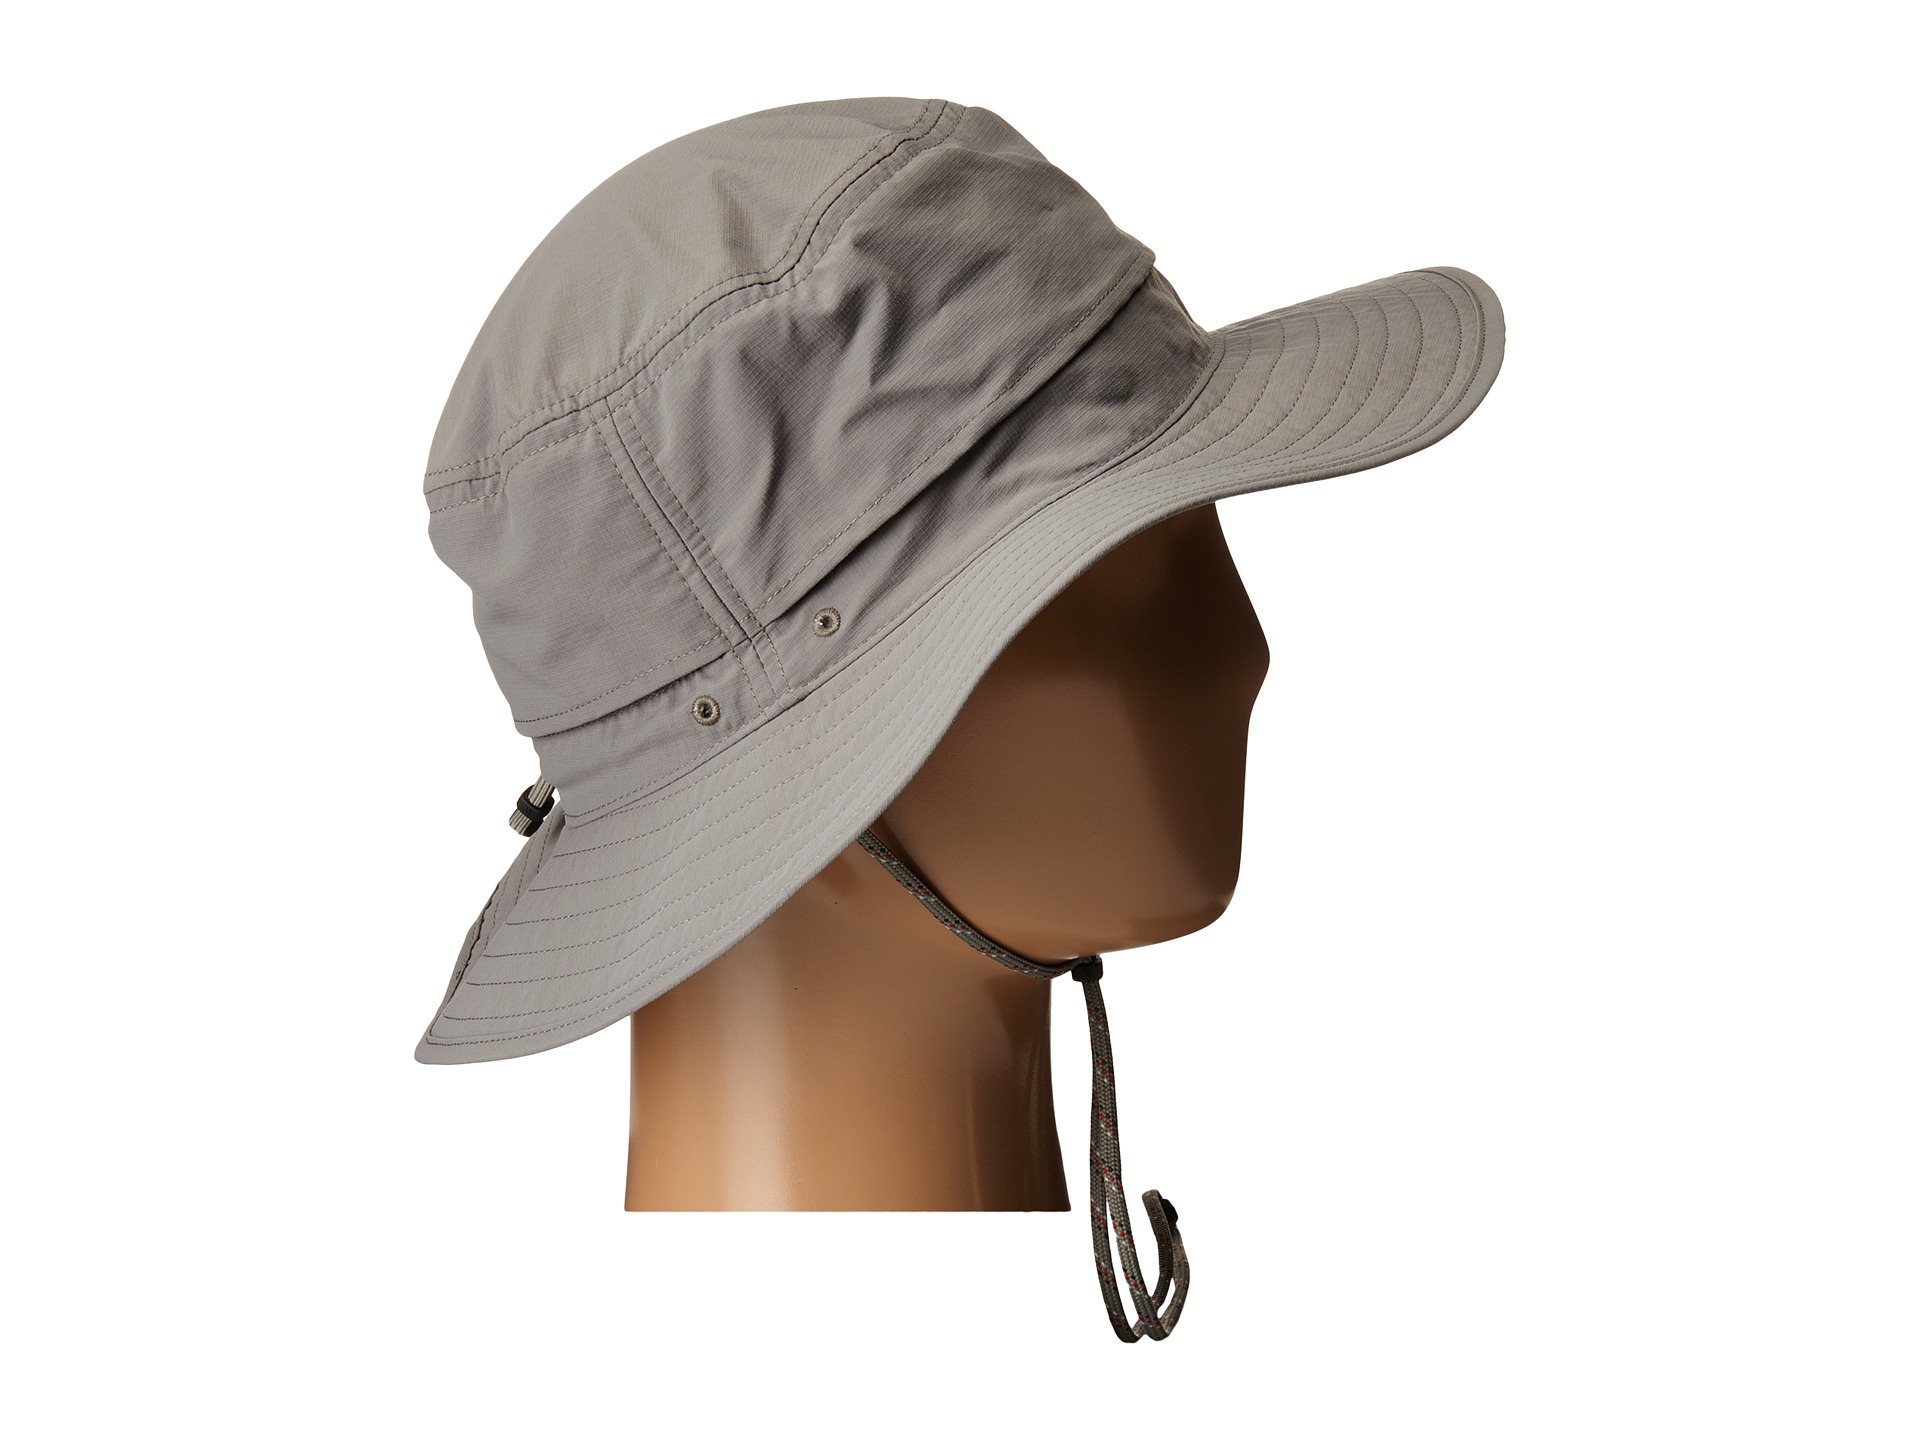 60ccb2d3d0b Lyst - The North Face Horizon Breeze Brimmer Hat in Gray for Men